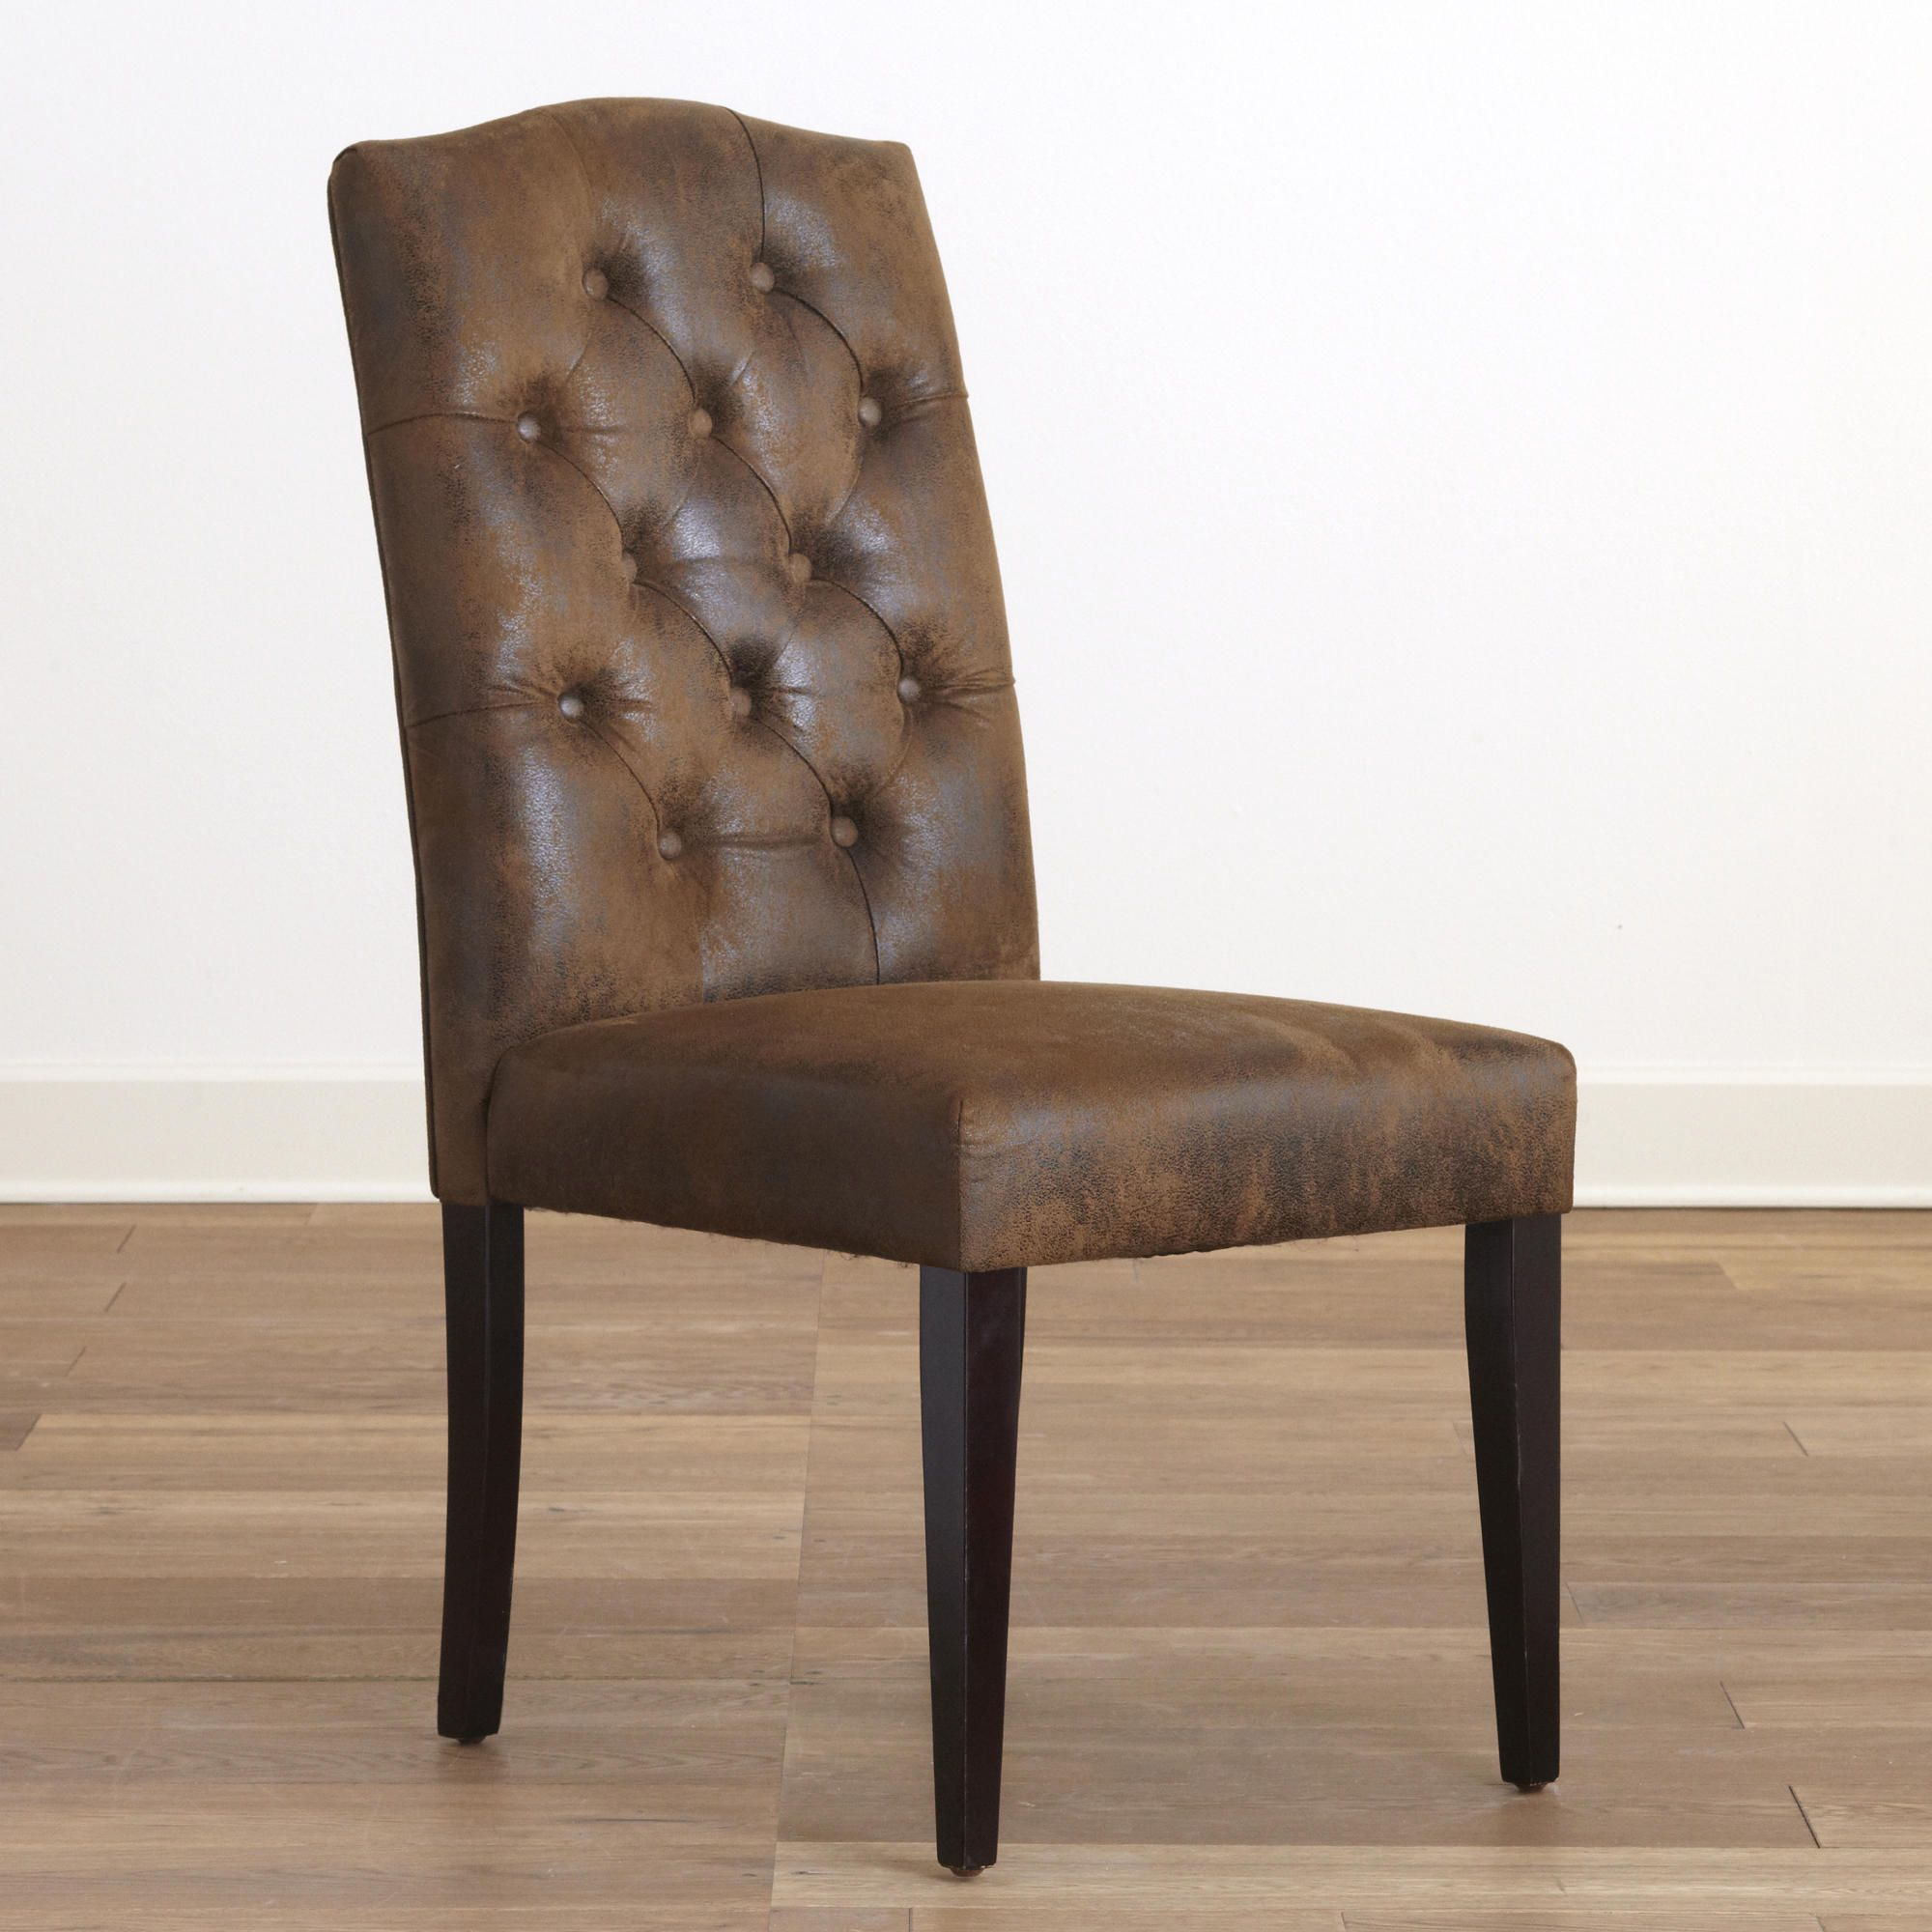 Stuhl Polstern Leder Tufted Chairs For Sale Stühle Tufted Dining Chairs Dining